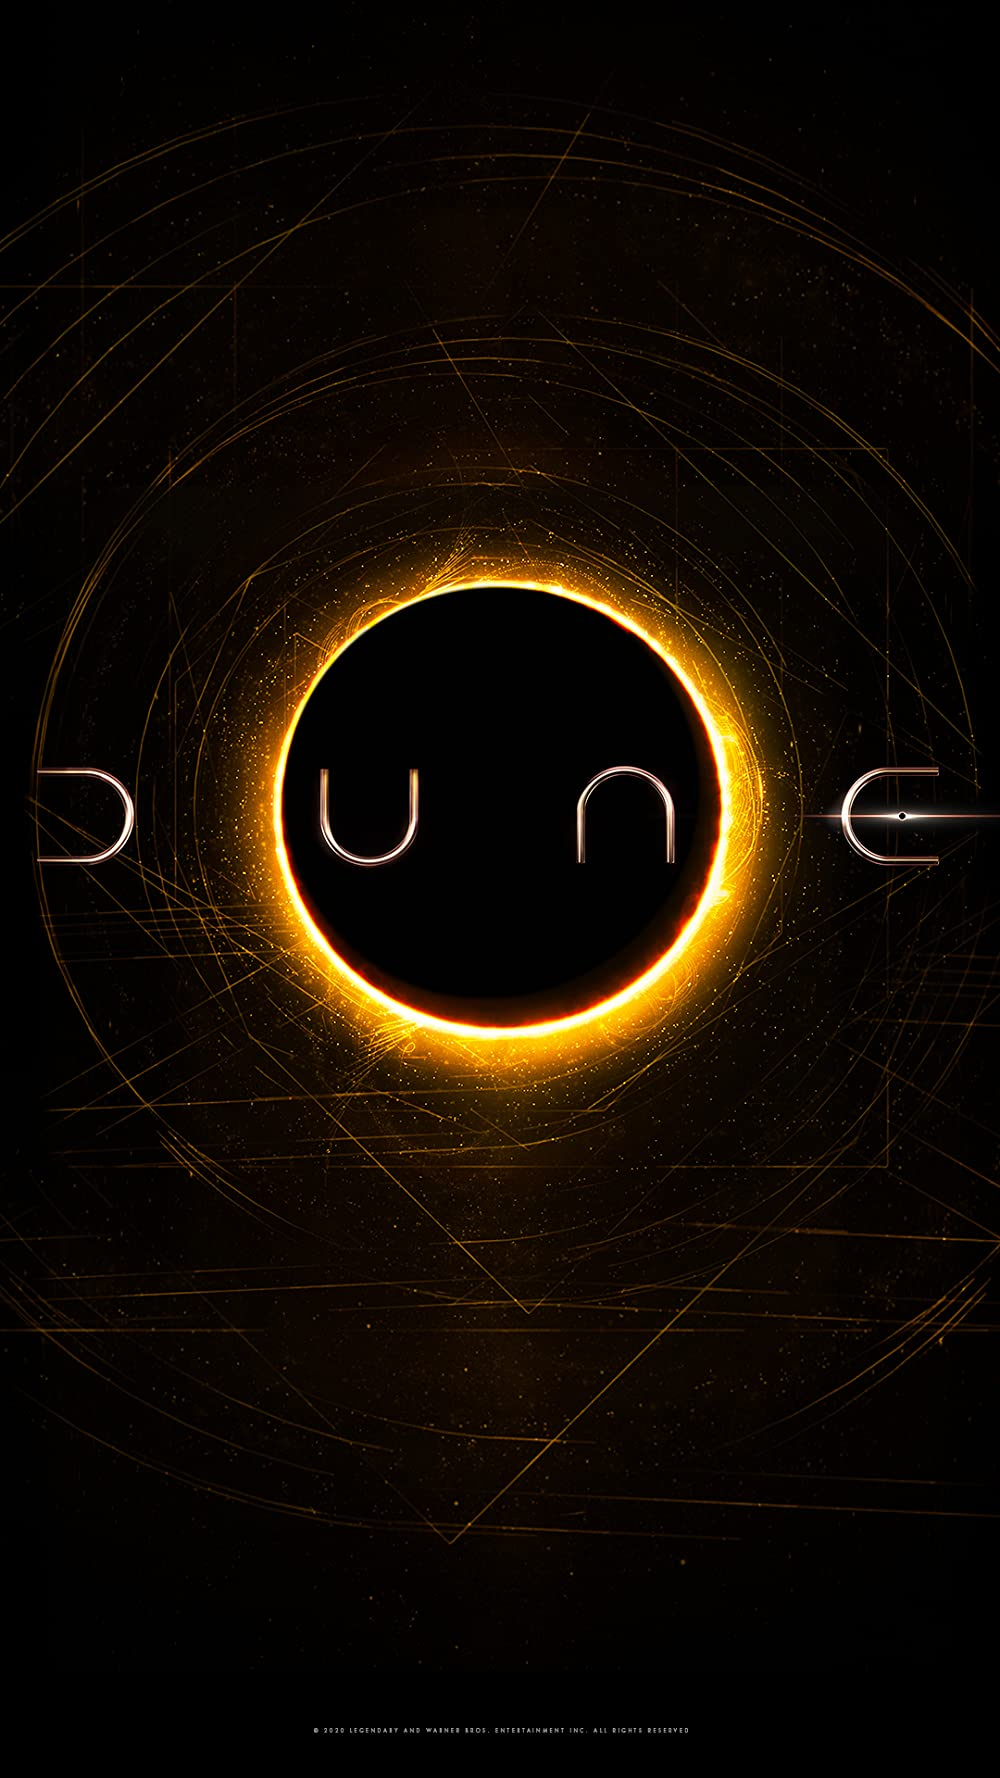 Dune | Official Movie Poster